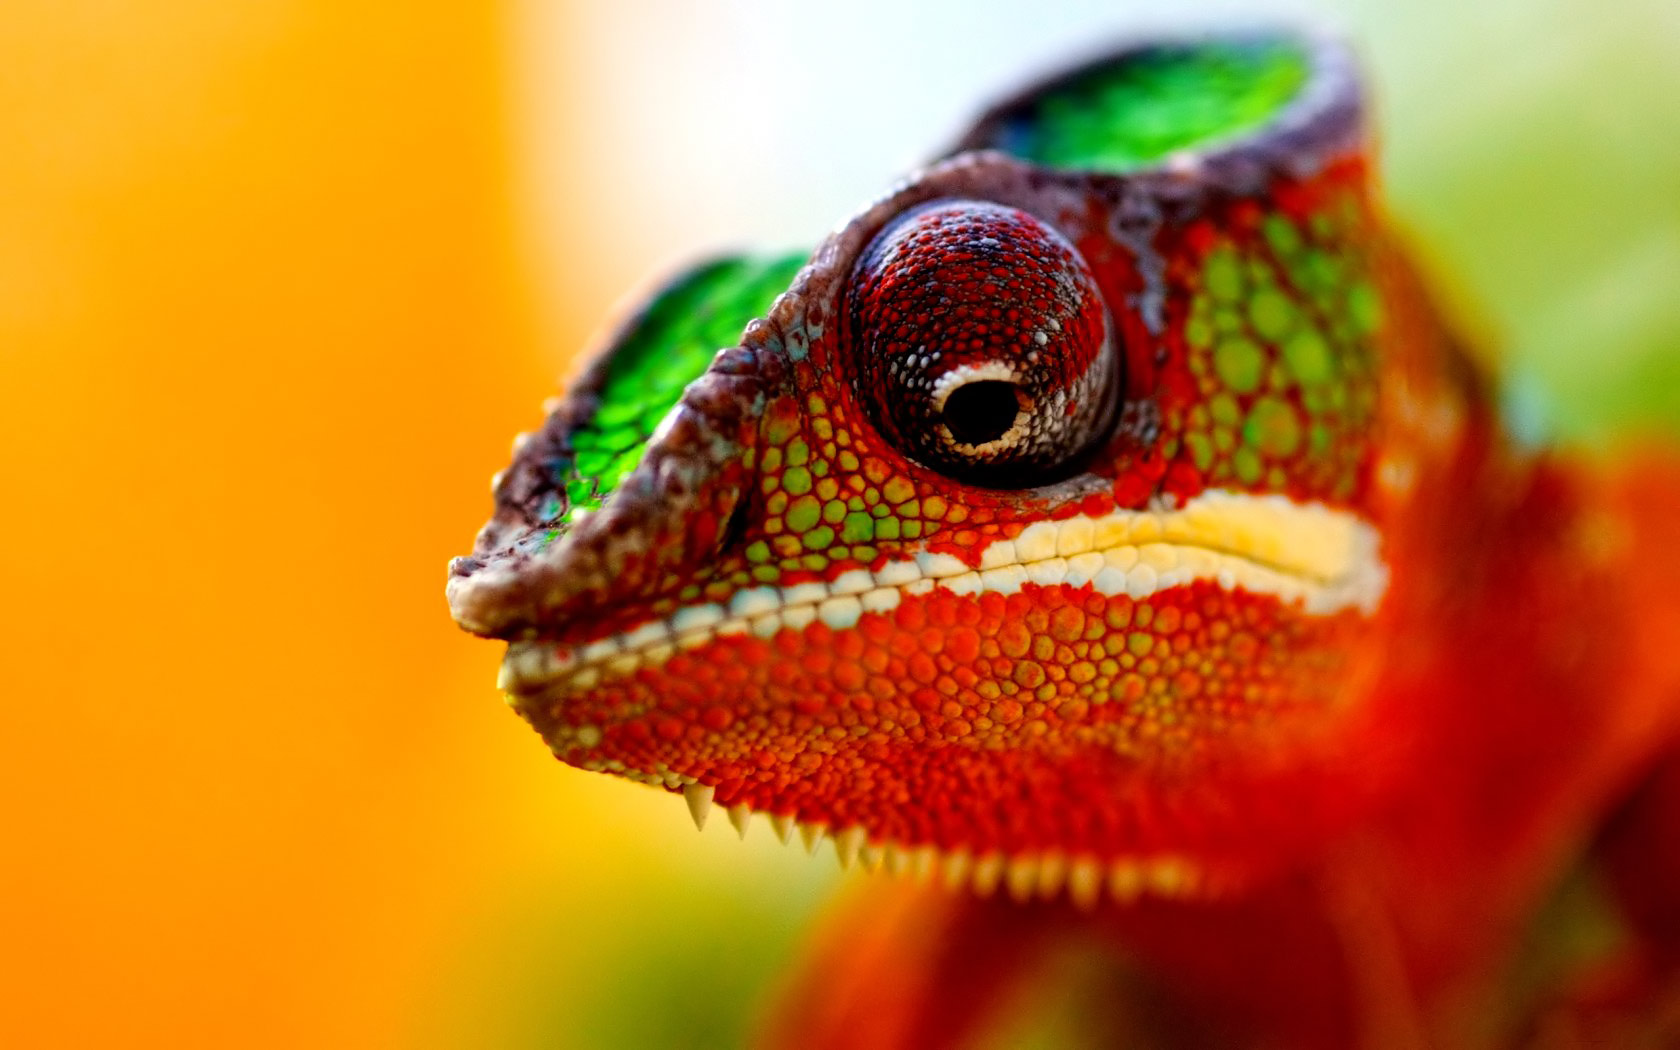 original-dream-I-want-to-have-a-chameleon-or-a-lively-lizard-time-2012-07-08_13-24-34-userid-186